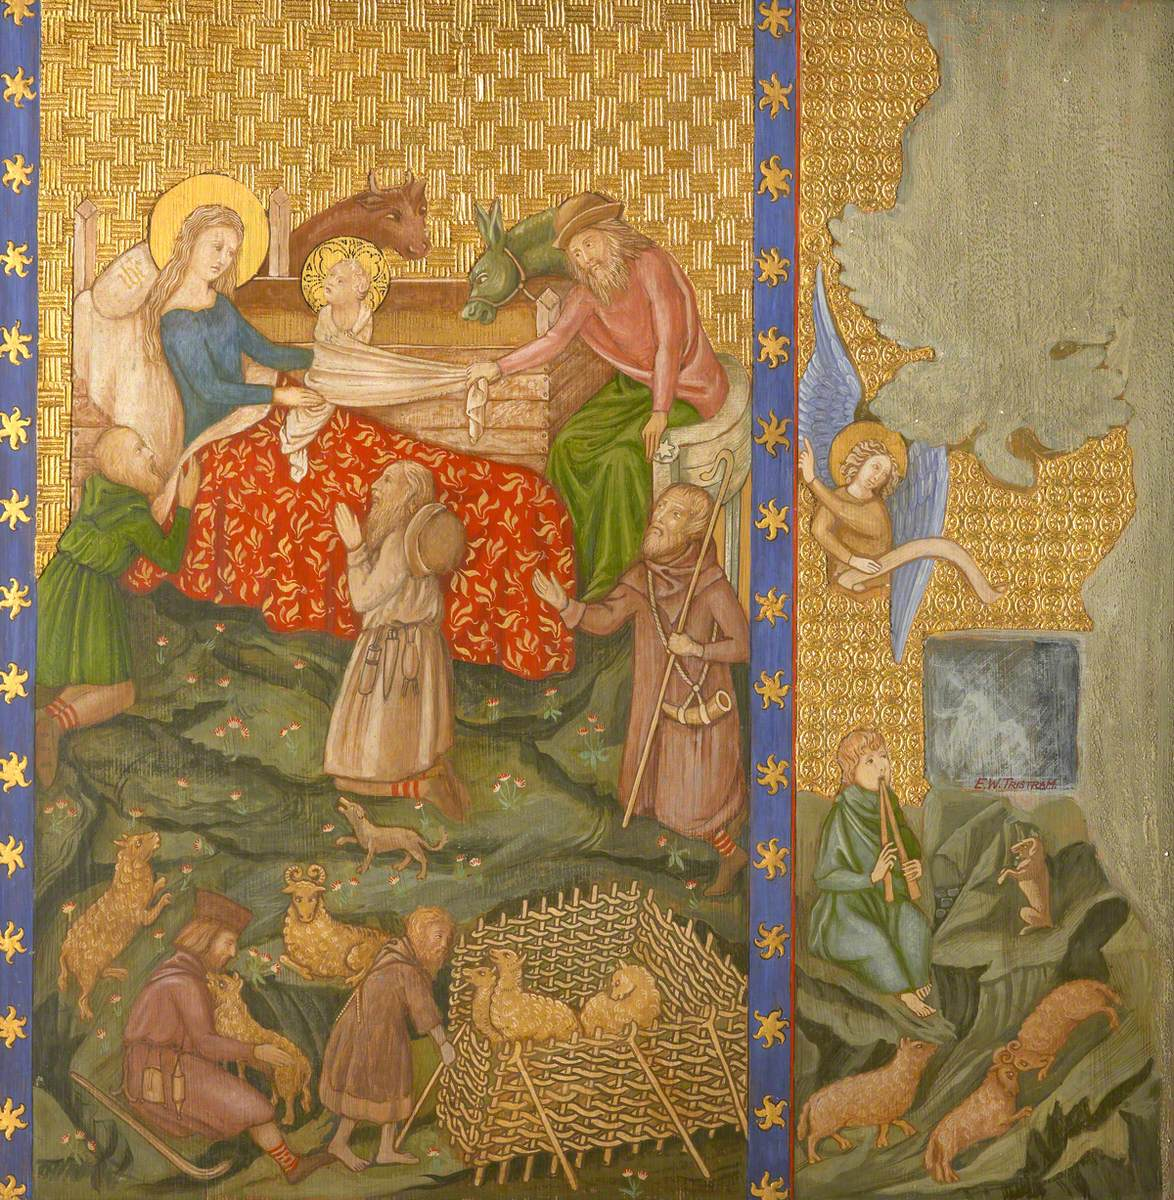 Reconstruction of Medieval Mural Painting, Adoration of the Shepherds